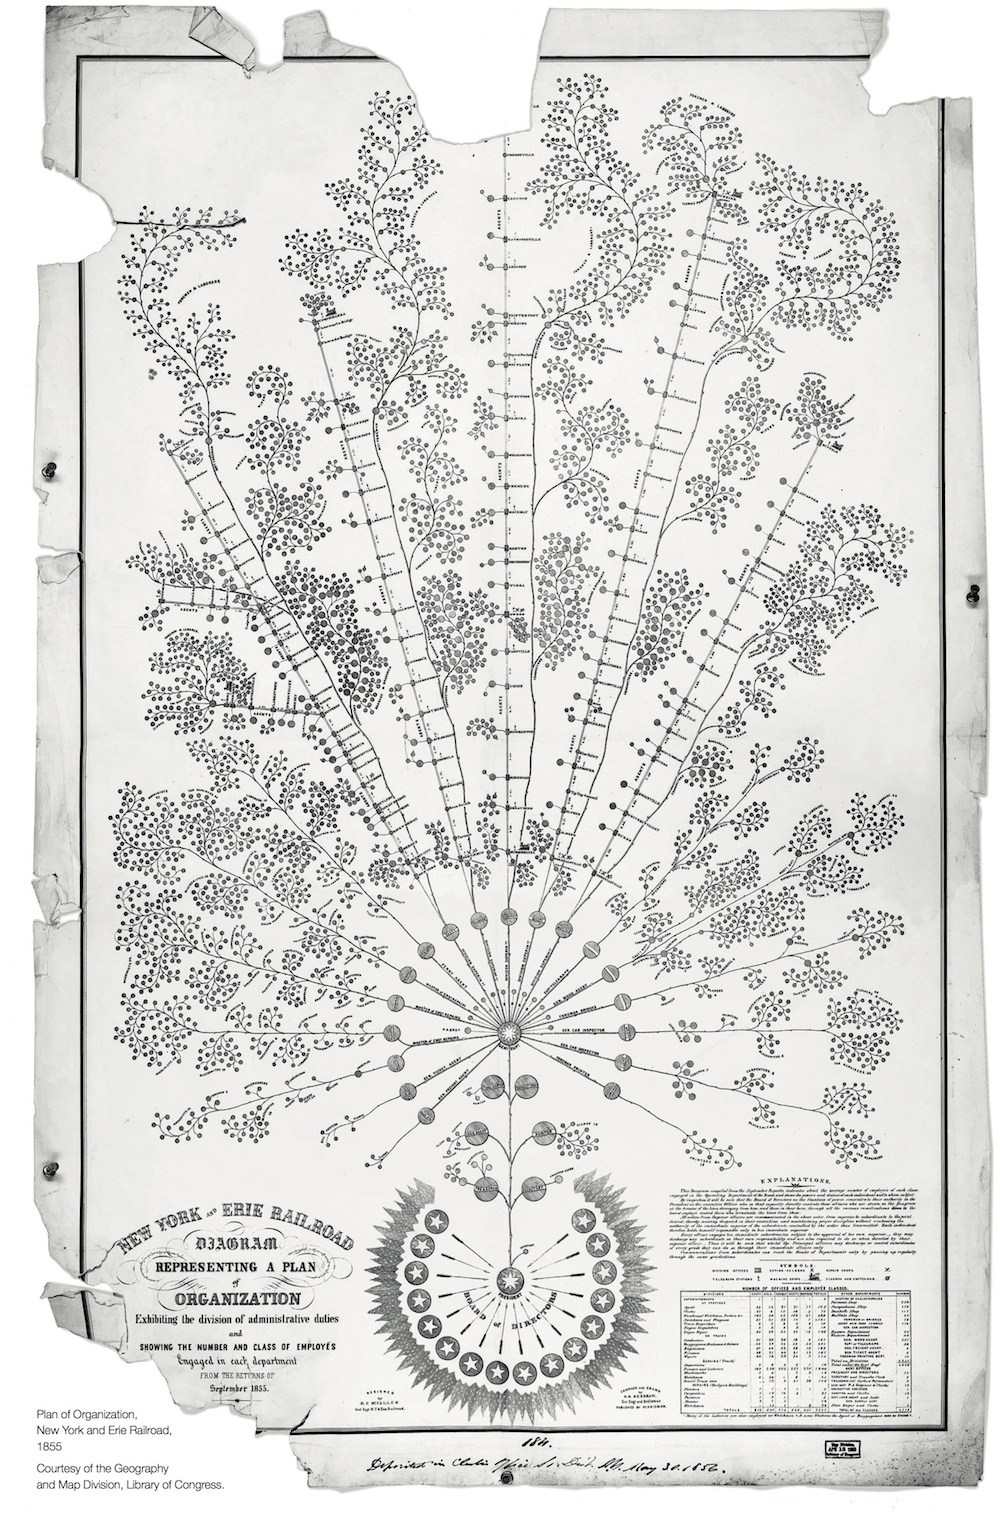 The first modern org chart created in 1855 for the New York and Erie Railroad